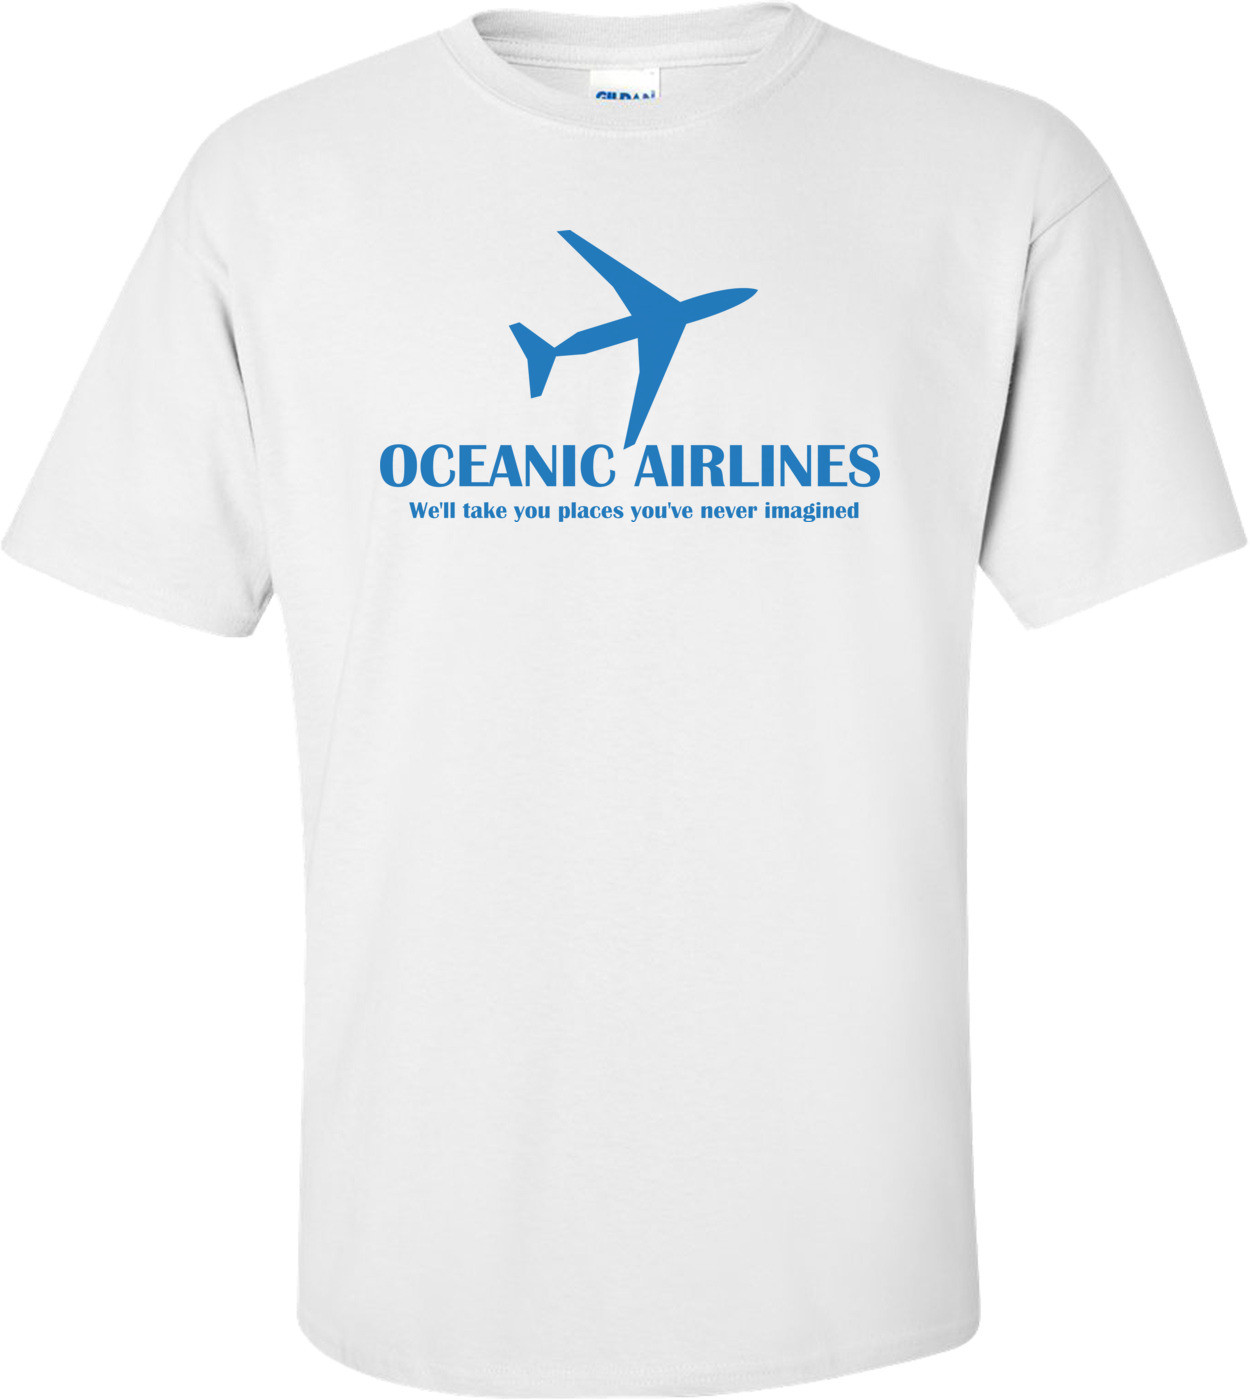 Lost - Oceanic Airlines T-shirt